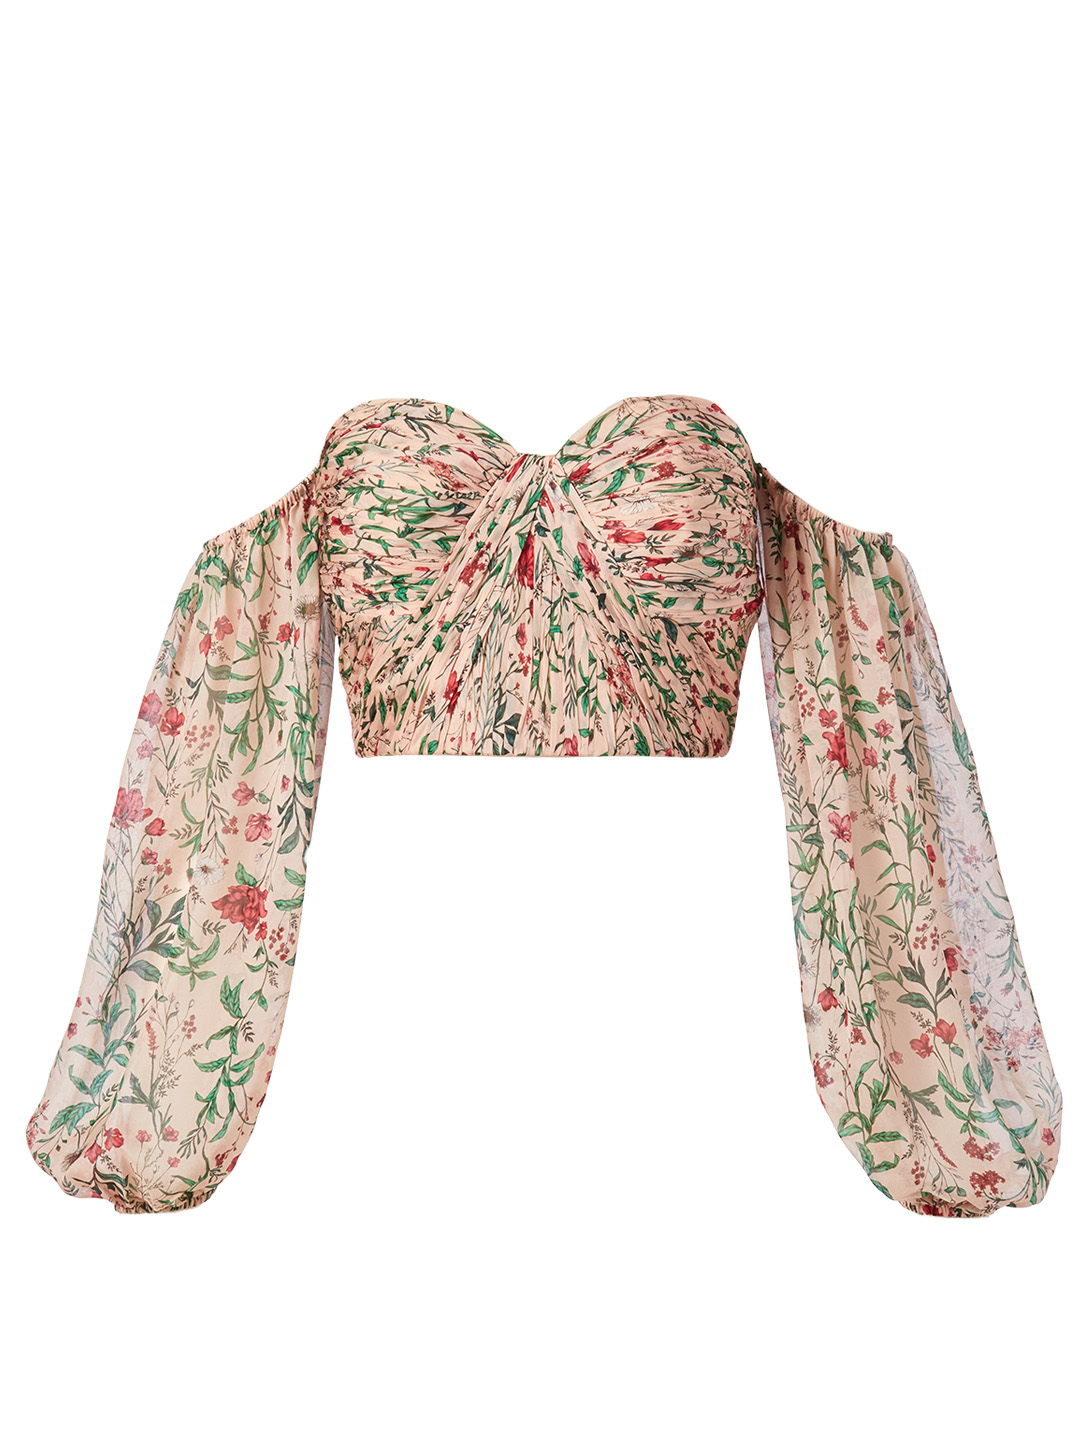 AMUR Helena Silk Off-The-Shoulder Bustier Top In Floral Print H Project Pink